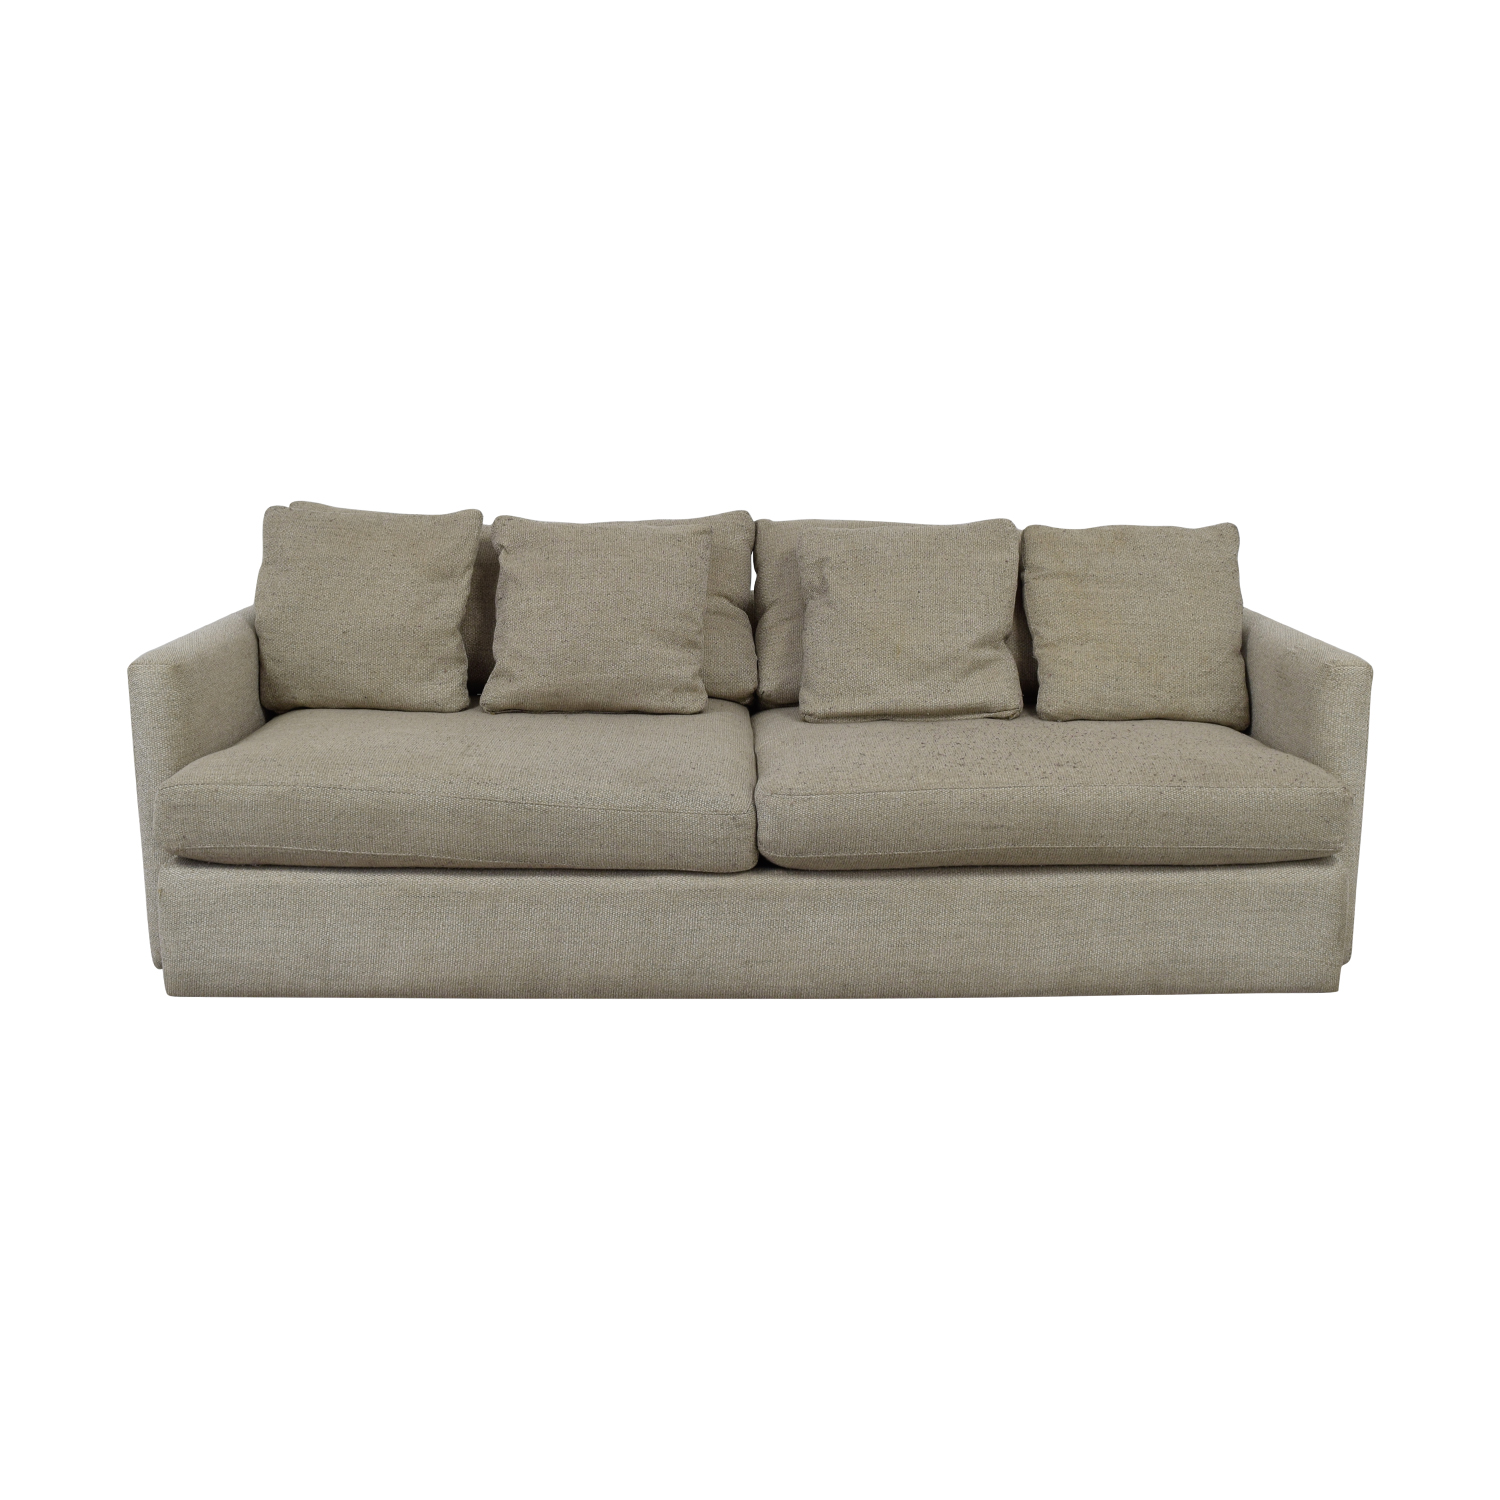 buy Crate & Barrel Crate & Barrel Cream Two-Cushion Sofa online